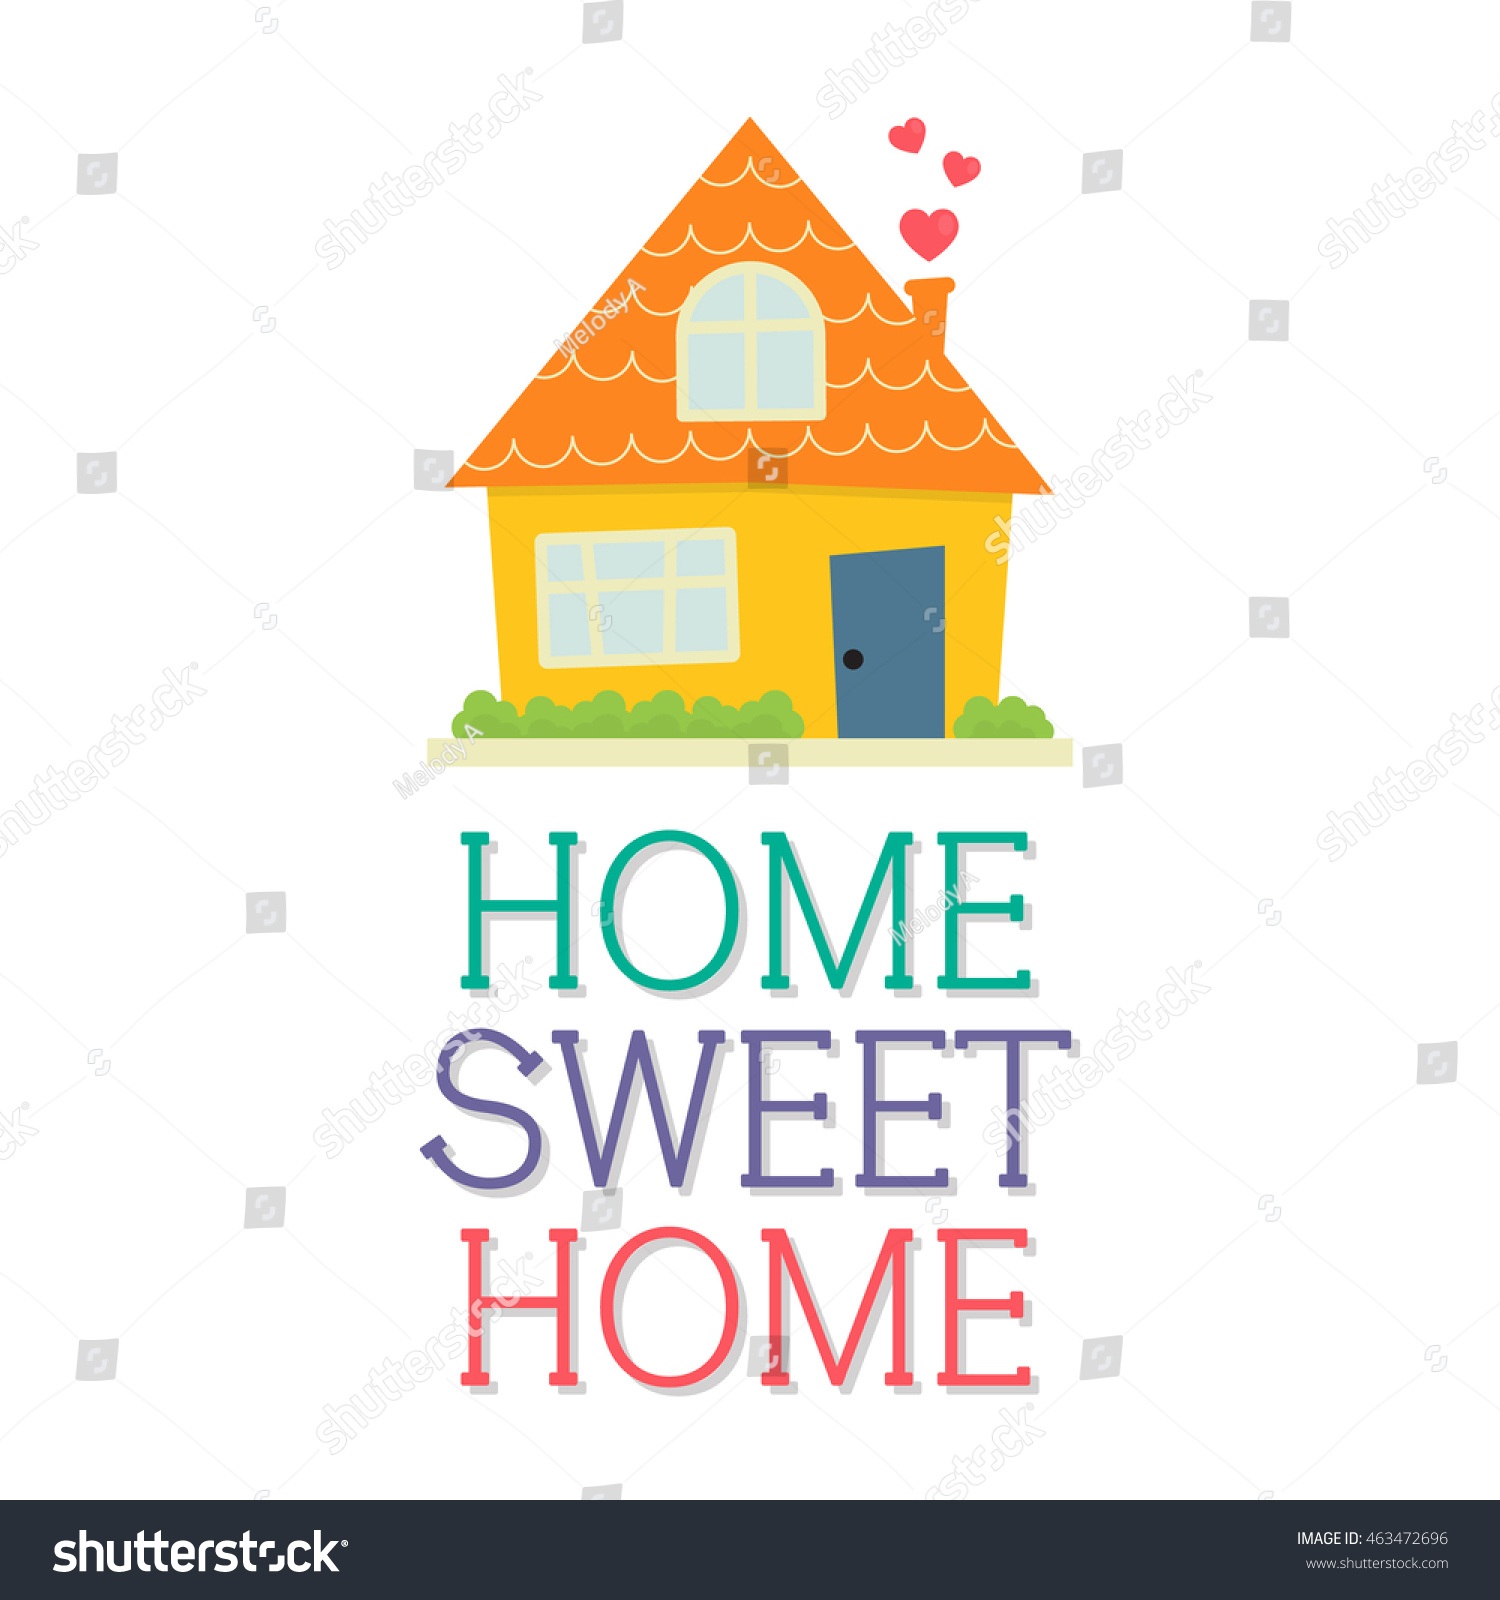 Home sweet home cute design stock vector 463472696 shutterstock - Home sweet home designs ...